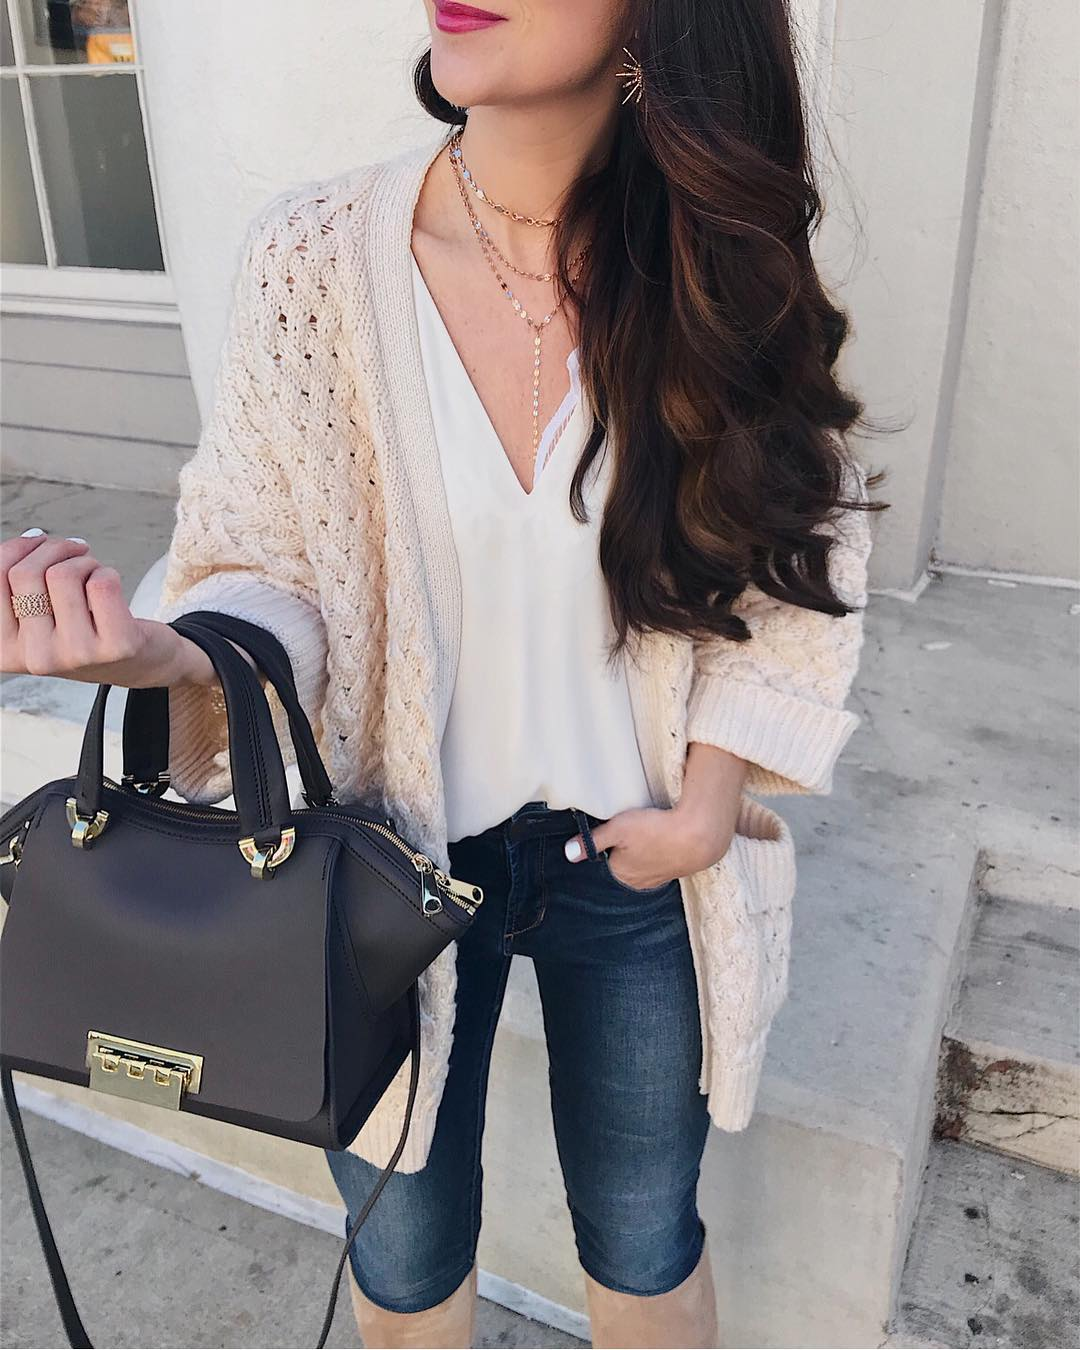 Adoring Knit Cardigan With V-Neck White Top Jeans And Beautiful Handbag